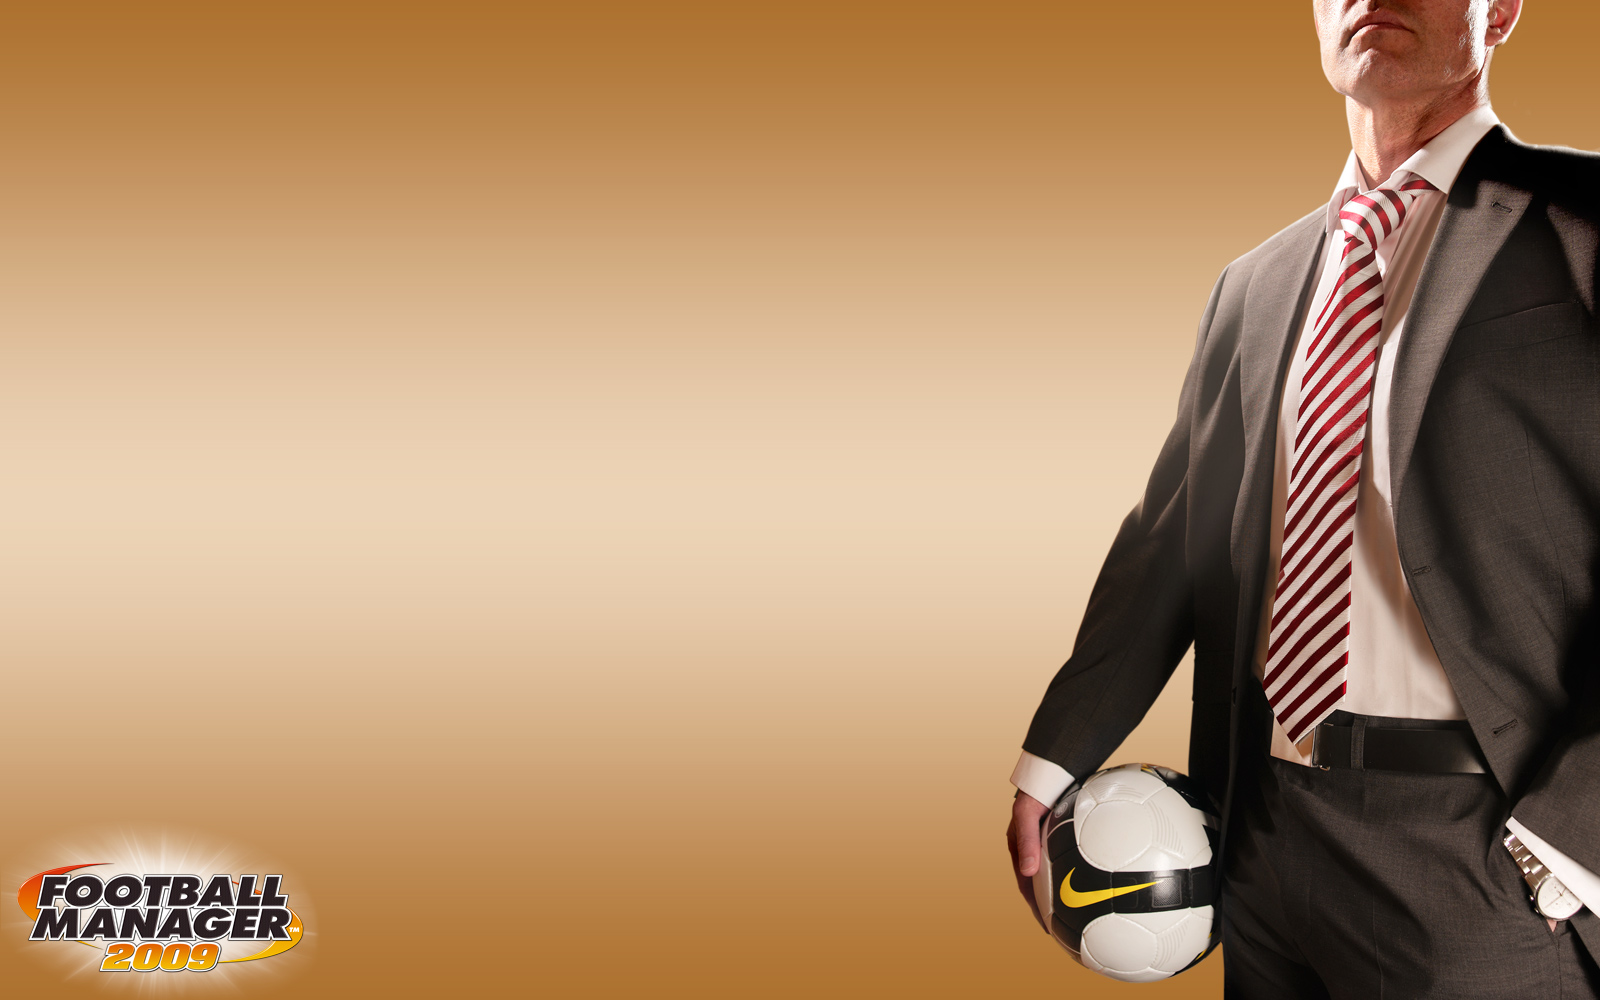 football manager wallpaper Photo